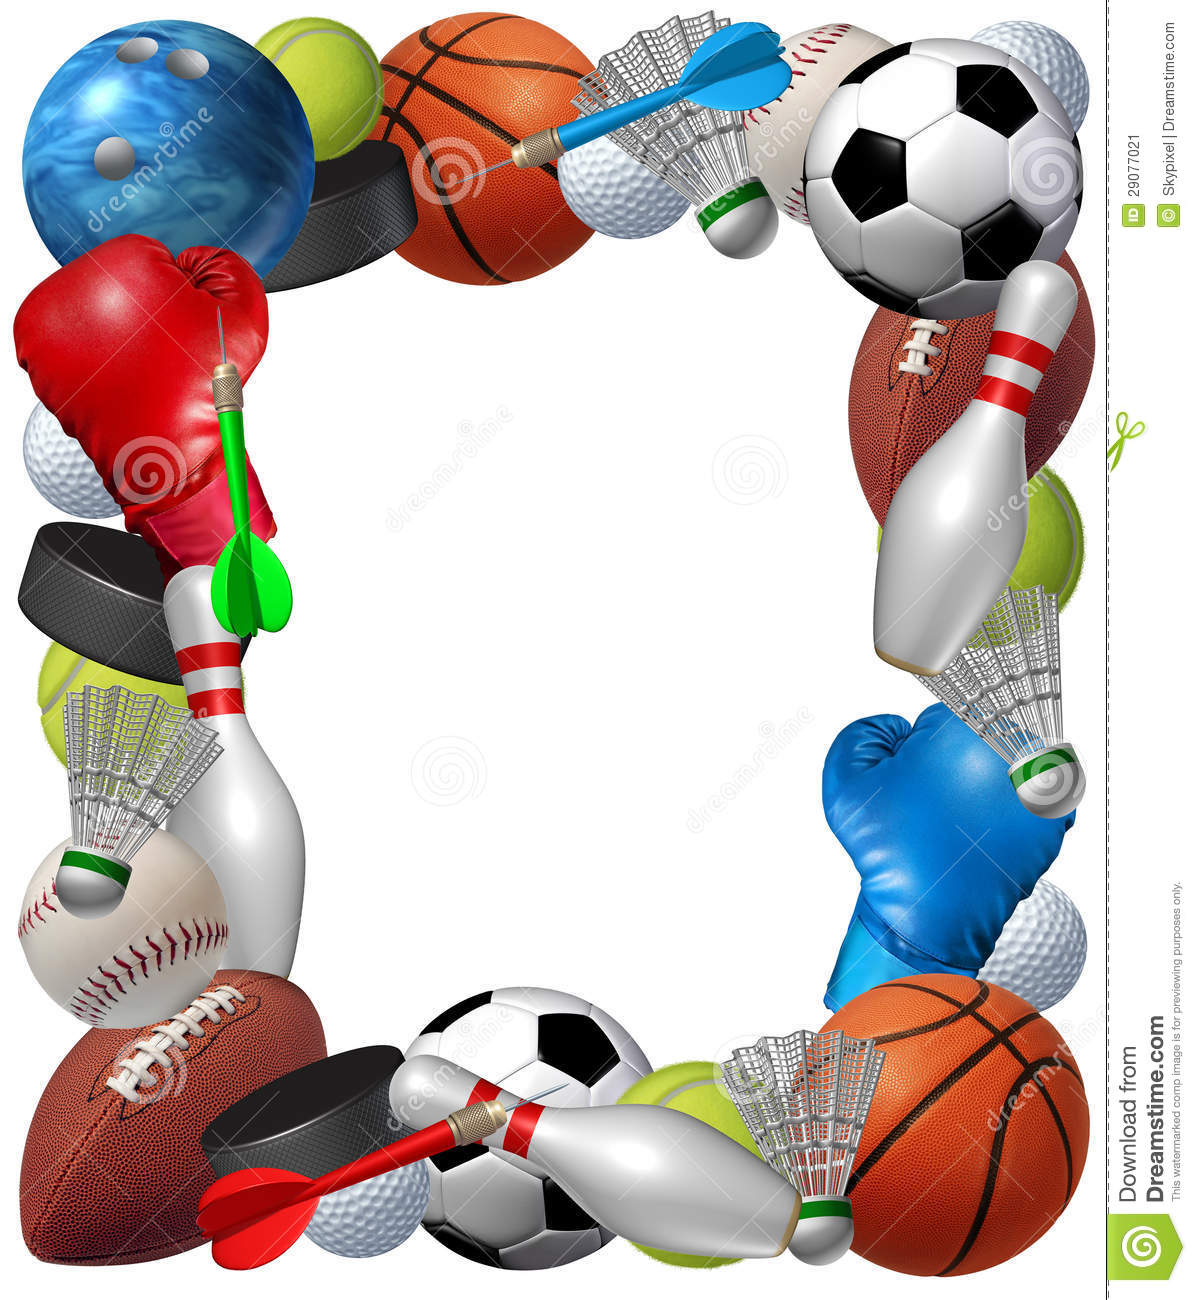 Baseball page border clipart best - Sports Page Borders Clipart Best